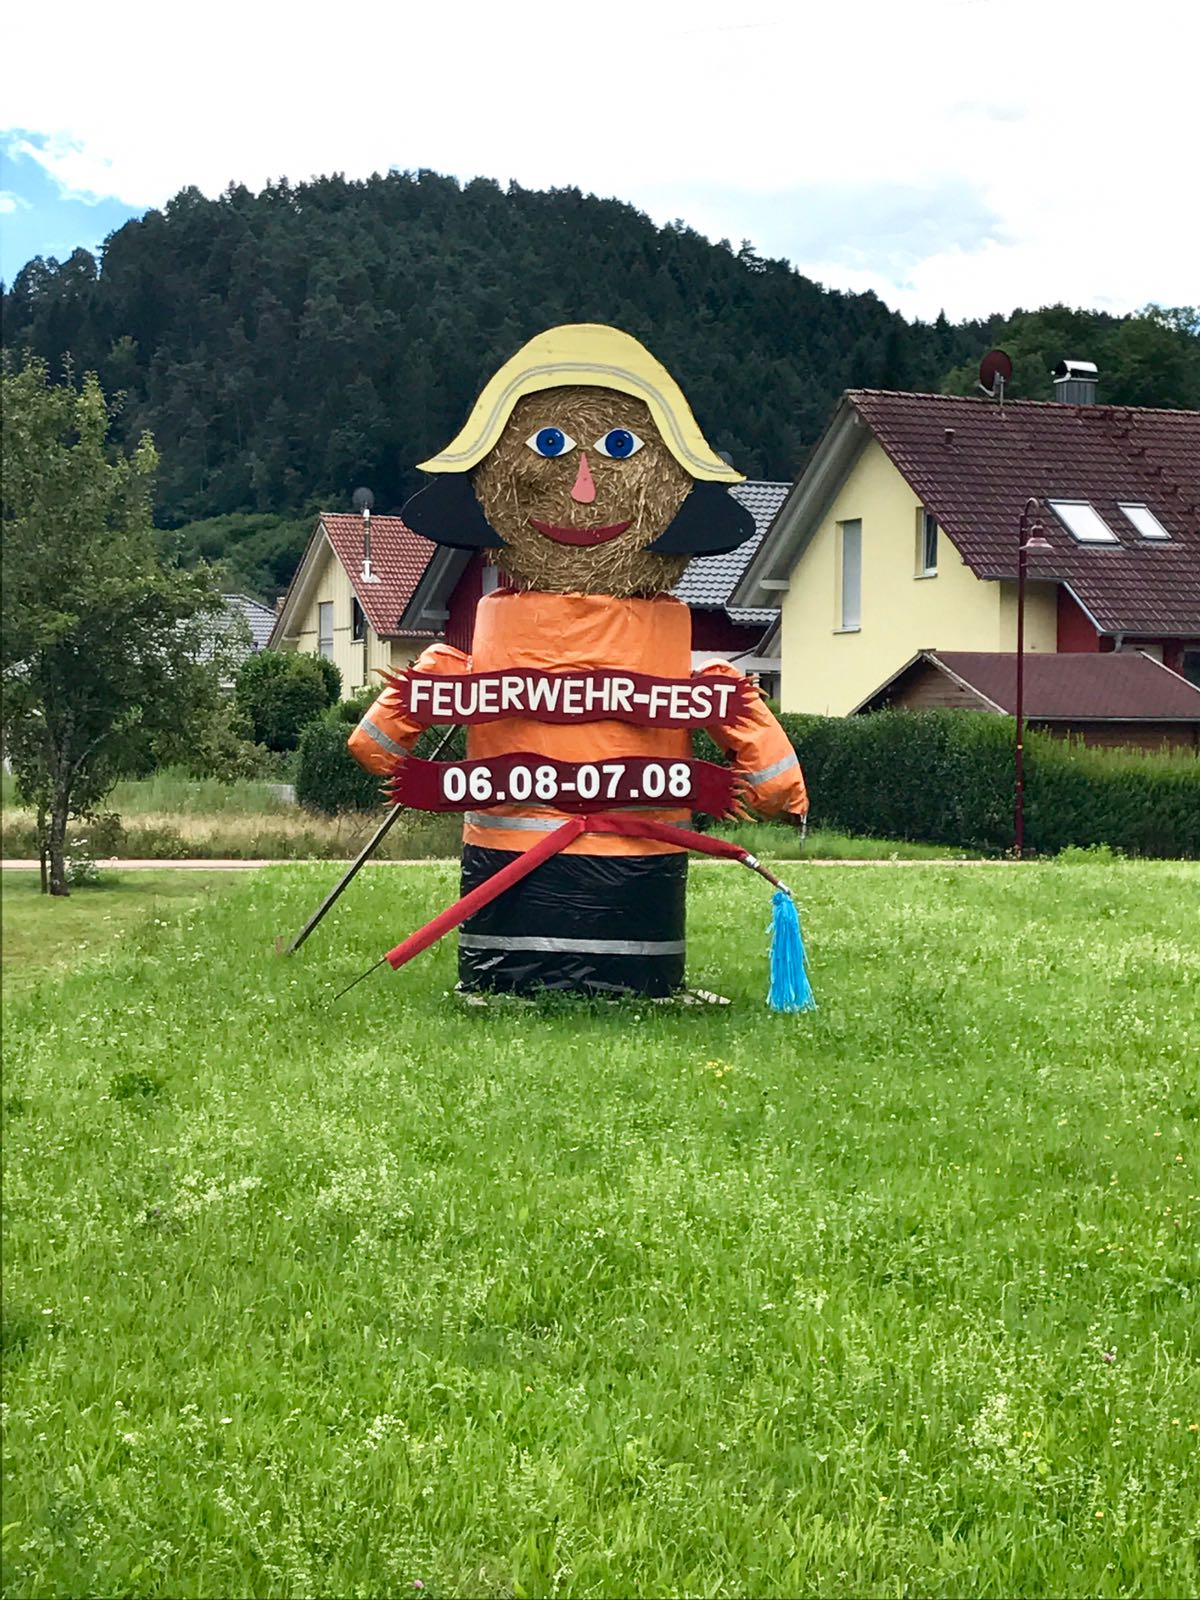 Fireman made out of hay for a fireman festival in the town of Gutach. Get it?